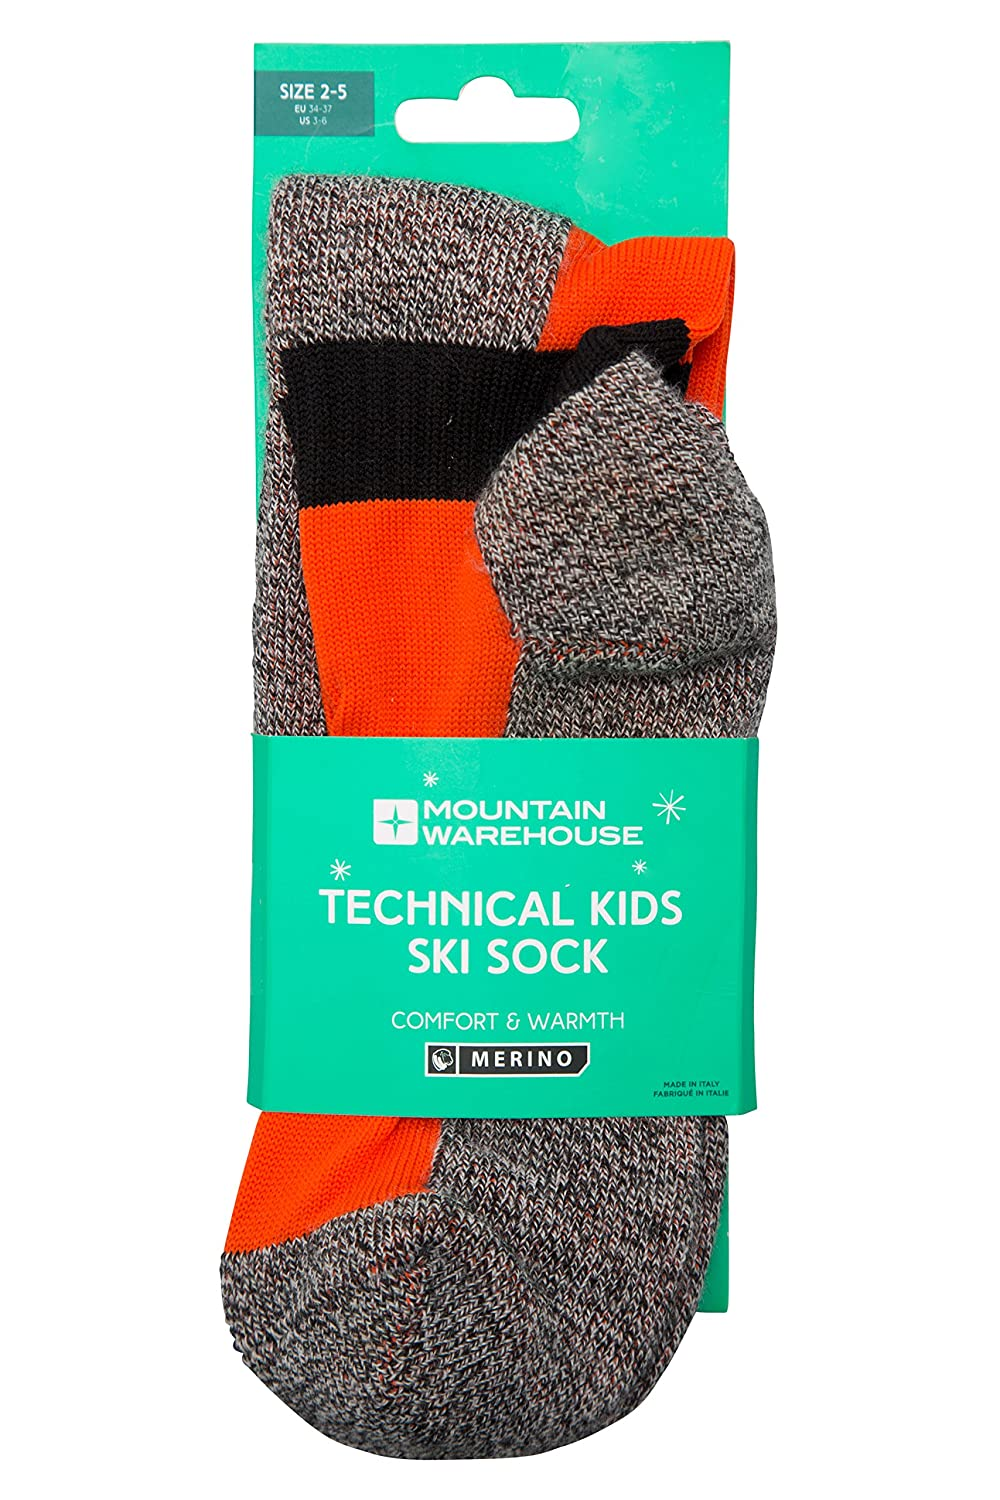 Mountain Warehouse Technical Kids Ski Socks - Quick Drying, Easy Care, High Wicking, Shaped & Cushioned - Ideal For Cold Winter Weather